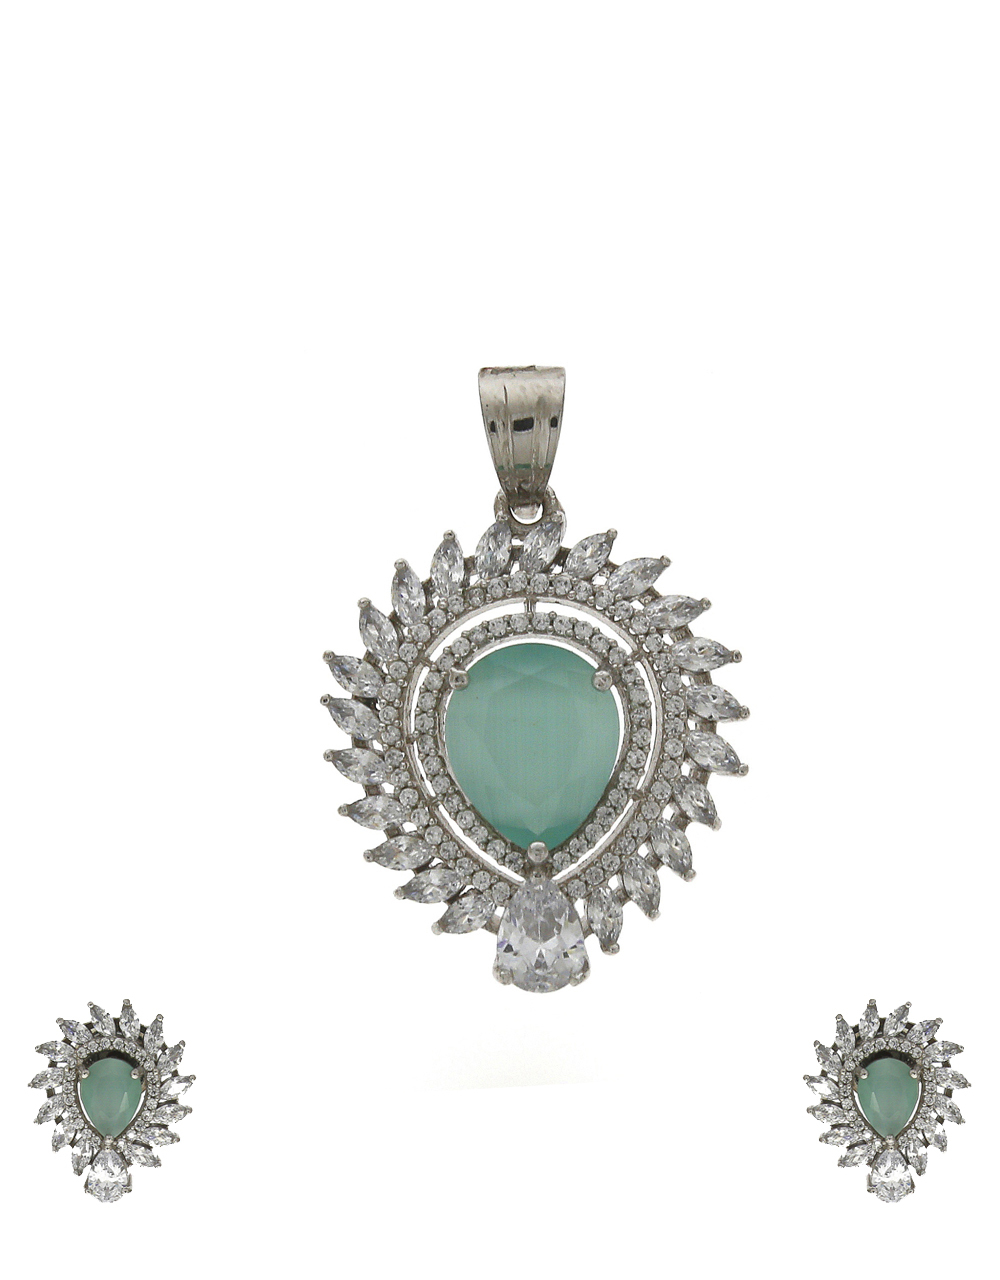 Silver- plated with pale green colour stone pendant with earrings set